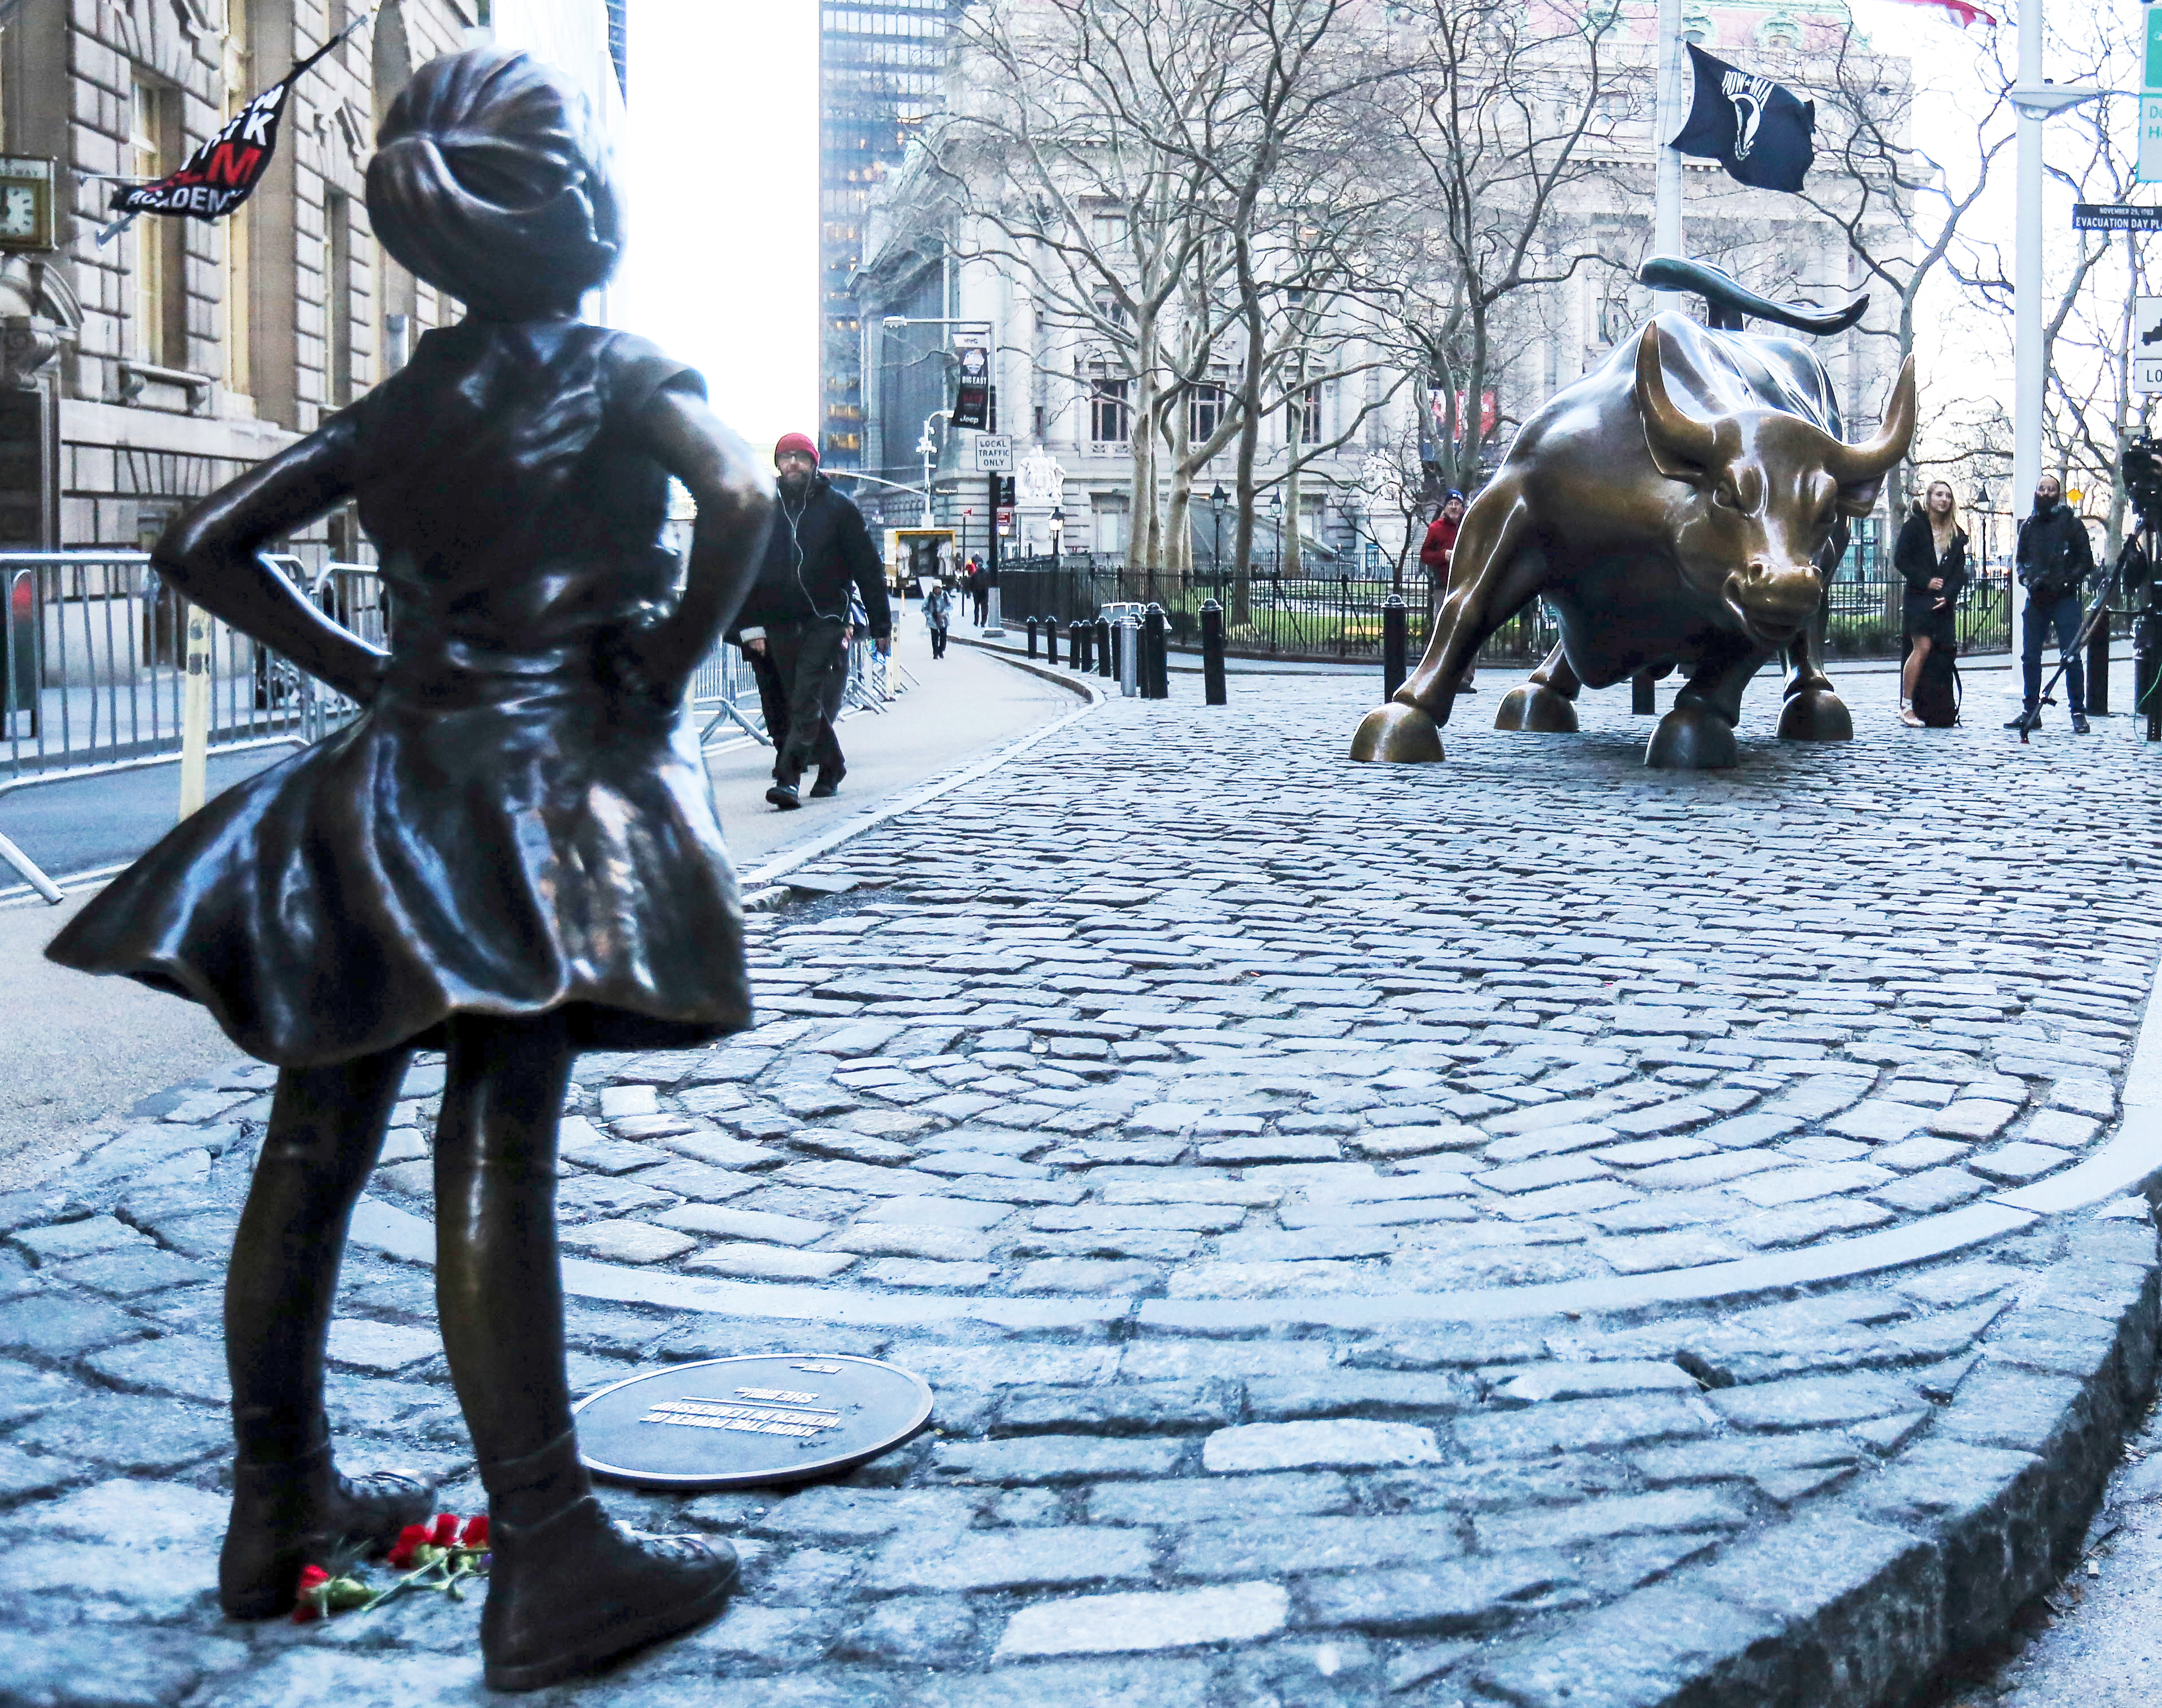 'The Fearless Girl' statue as it stands across from the Wall Street's famous Charging Bull